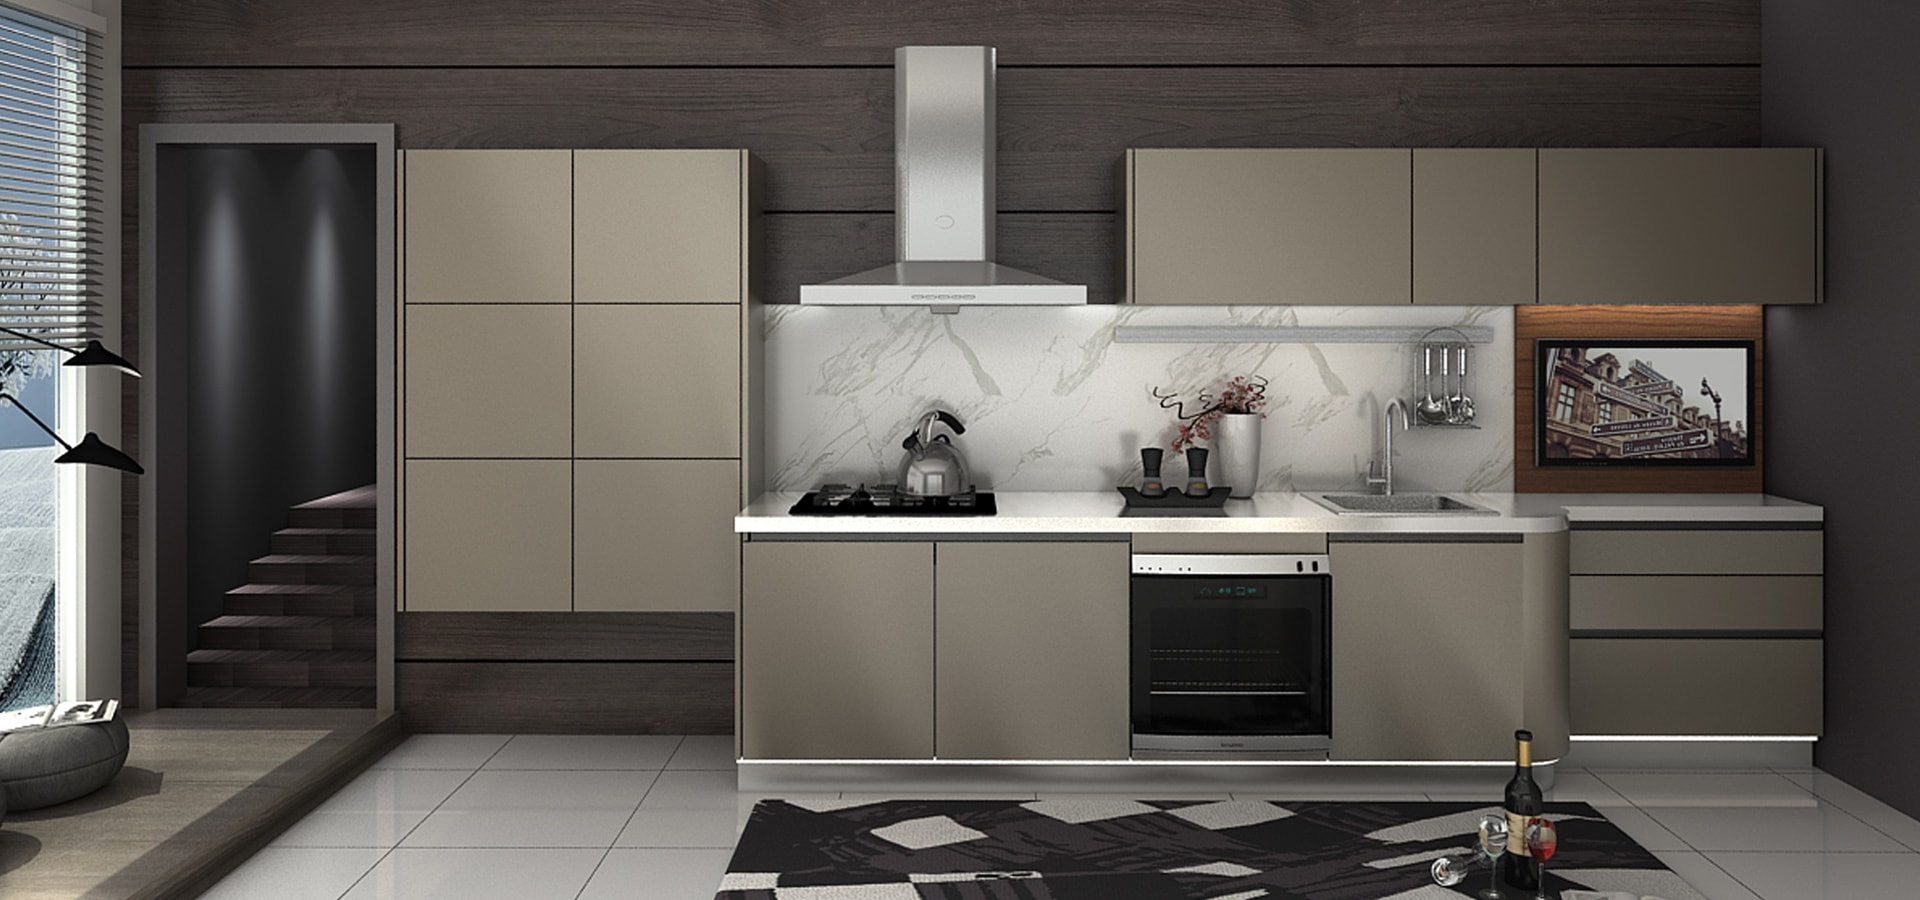 stainless steel kitchen cabinet design stainless steel kitchen cabinets custom kitchen cupboards 8242